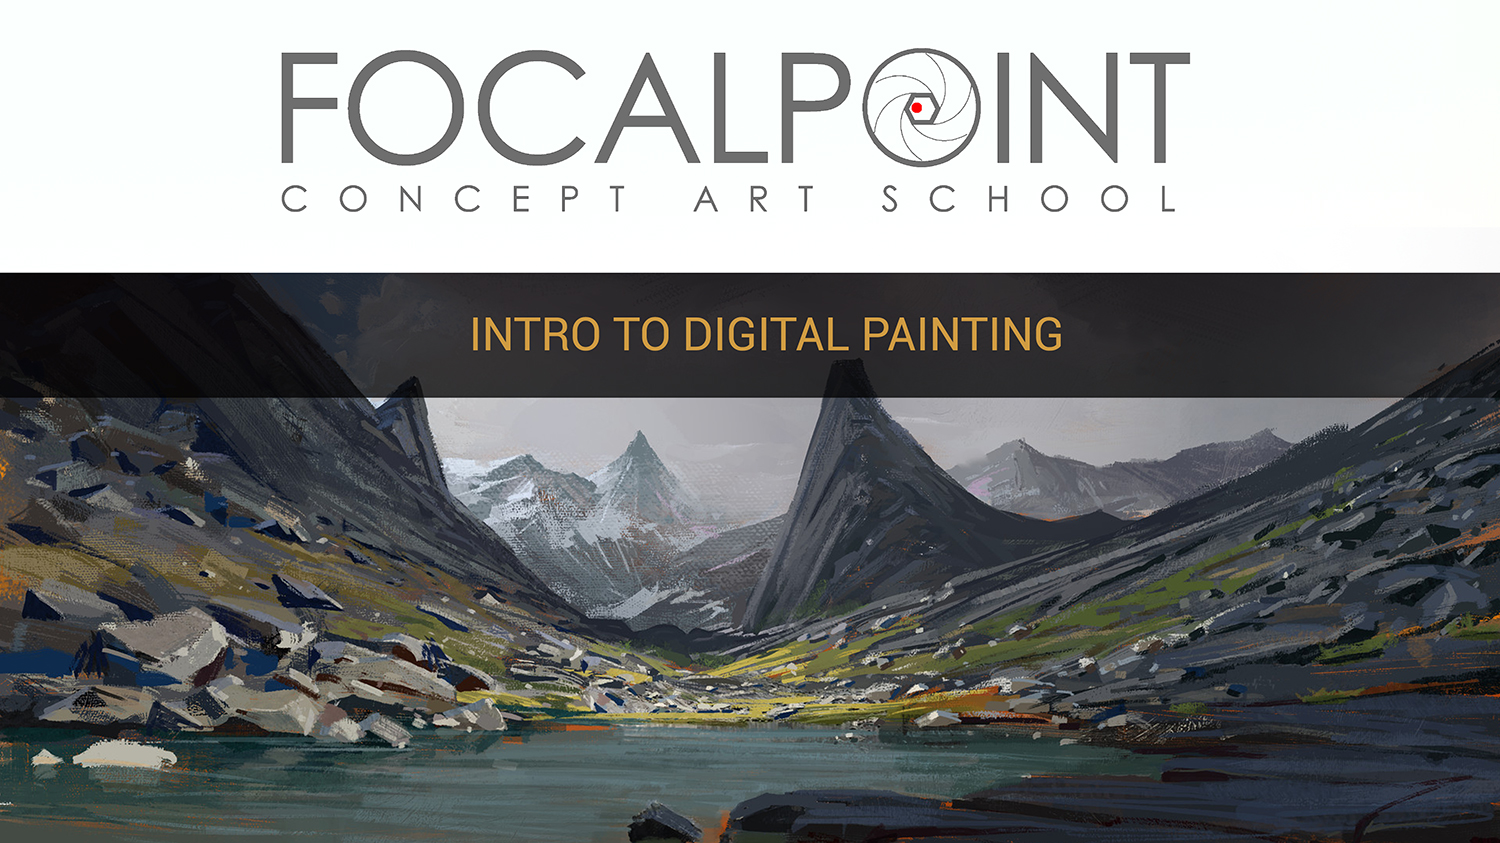 FOCALPOINT_CLASS_BANNERS_intro_to_digital_painting_fall_ENG.jpg